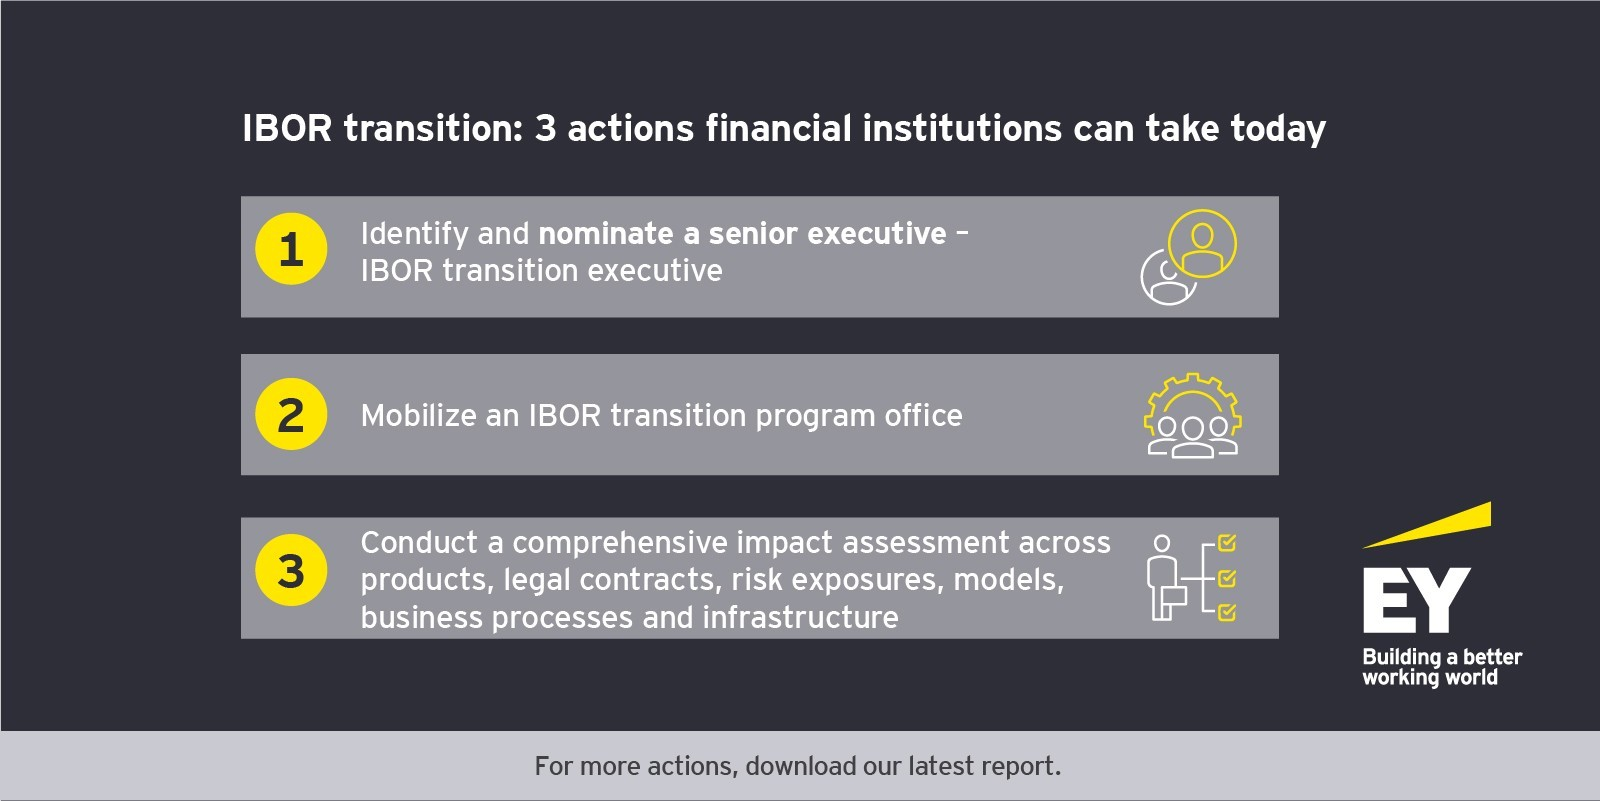 IBOR transition: three actions financial institutions can take today